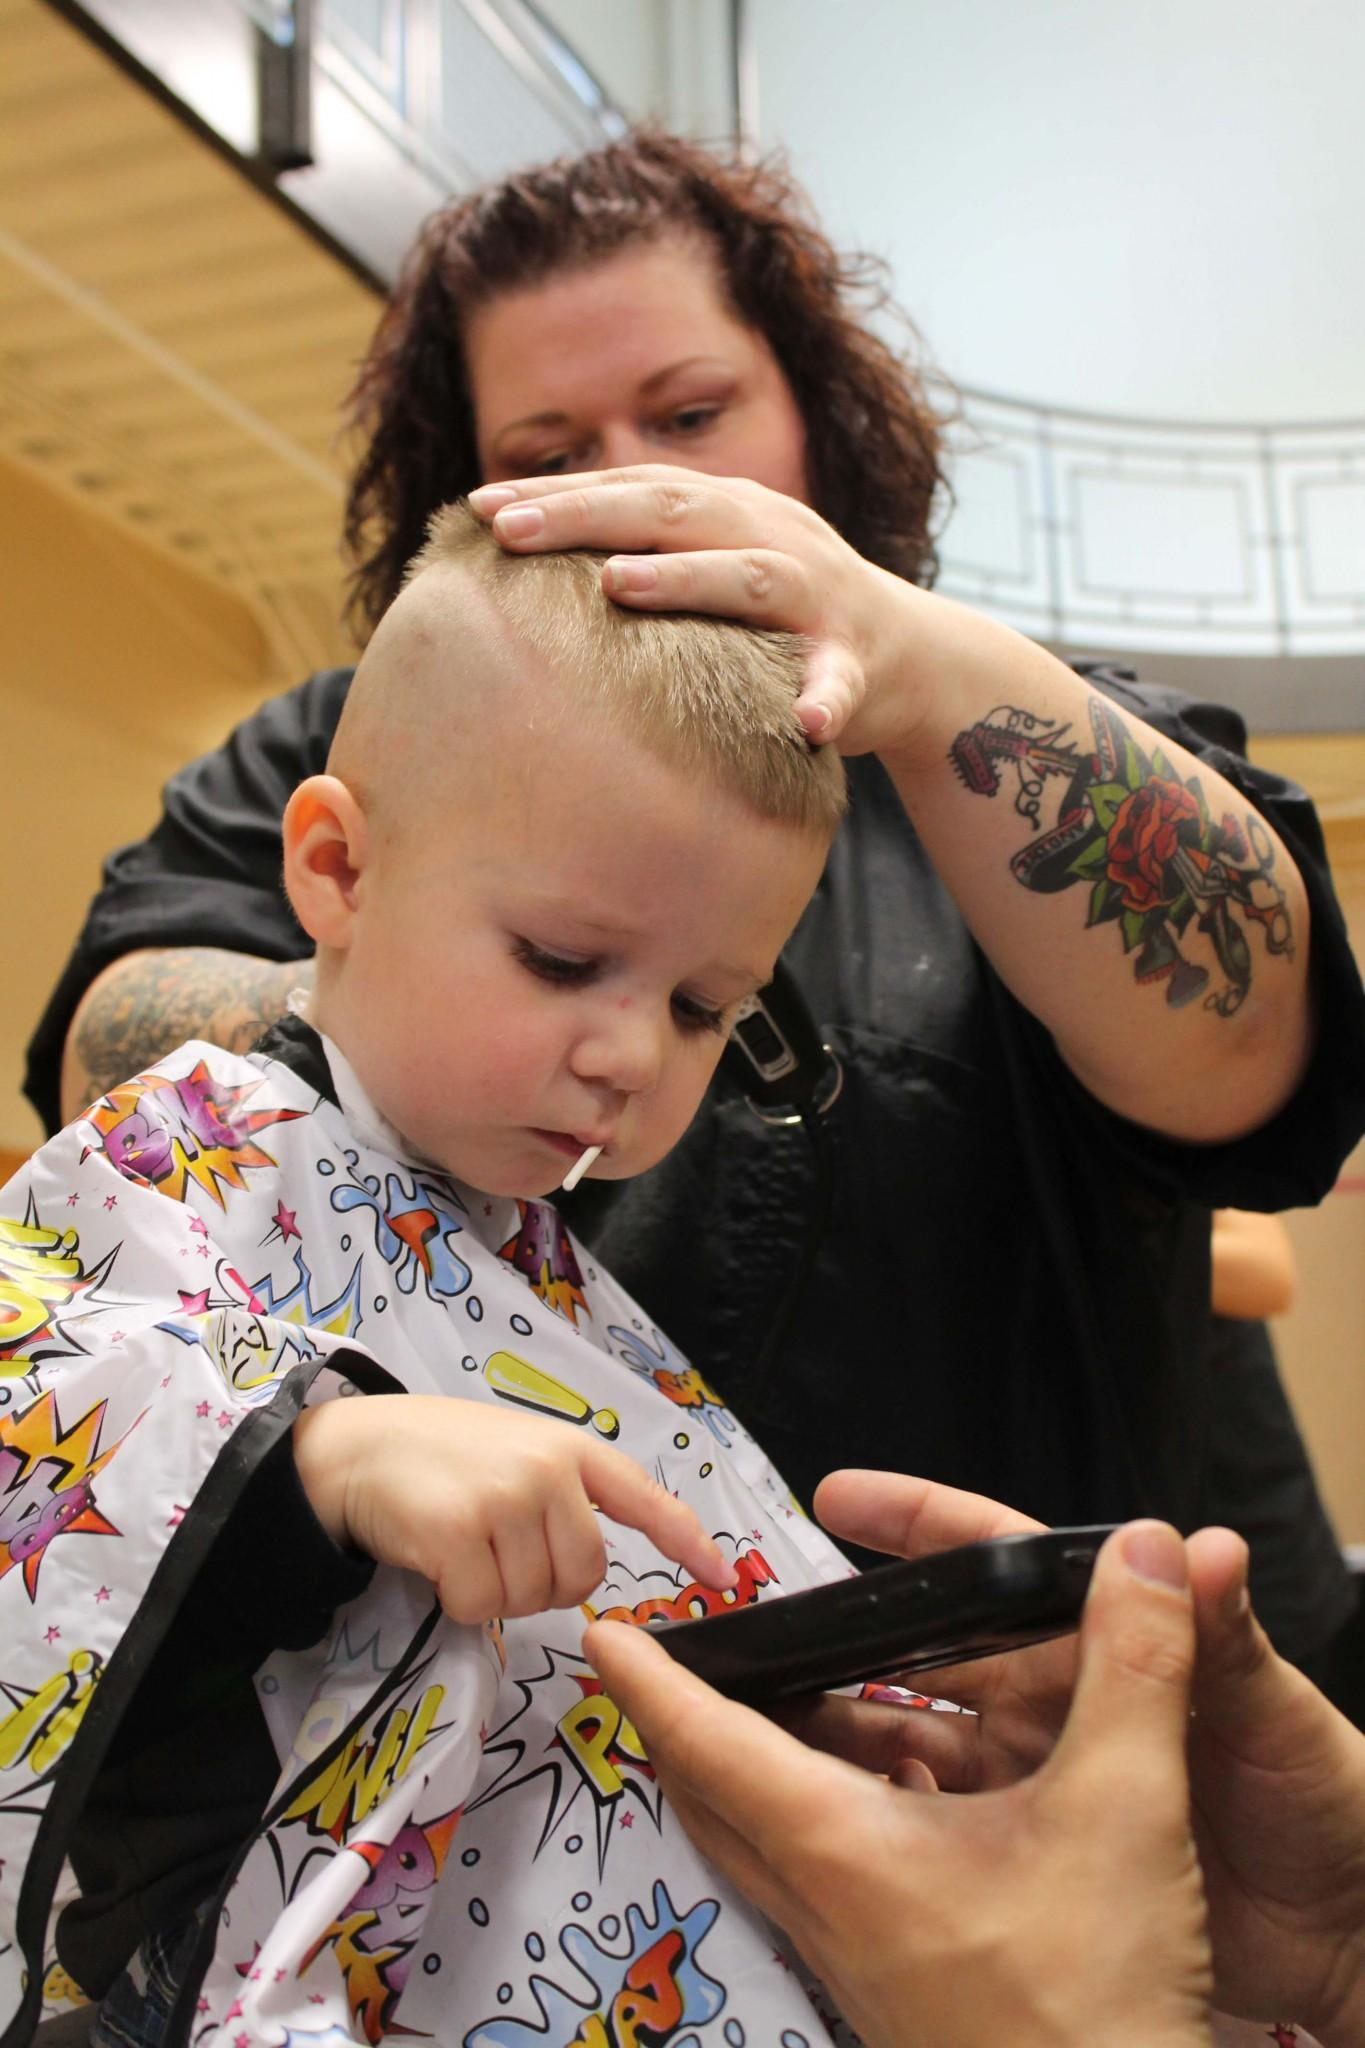 Three year old Fort Collins resident, Gage, plays on his dad's phone while getting a hair cut at the Aztlan Community Center. Project Homeless Connect was a one day volunteering event that provided families in need with a variety of resources to help them get back on their feet.